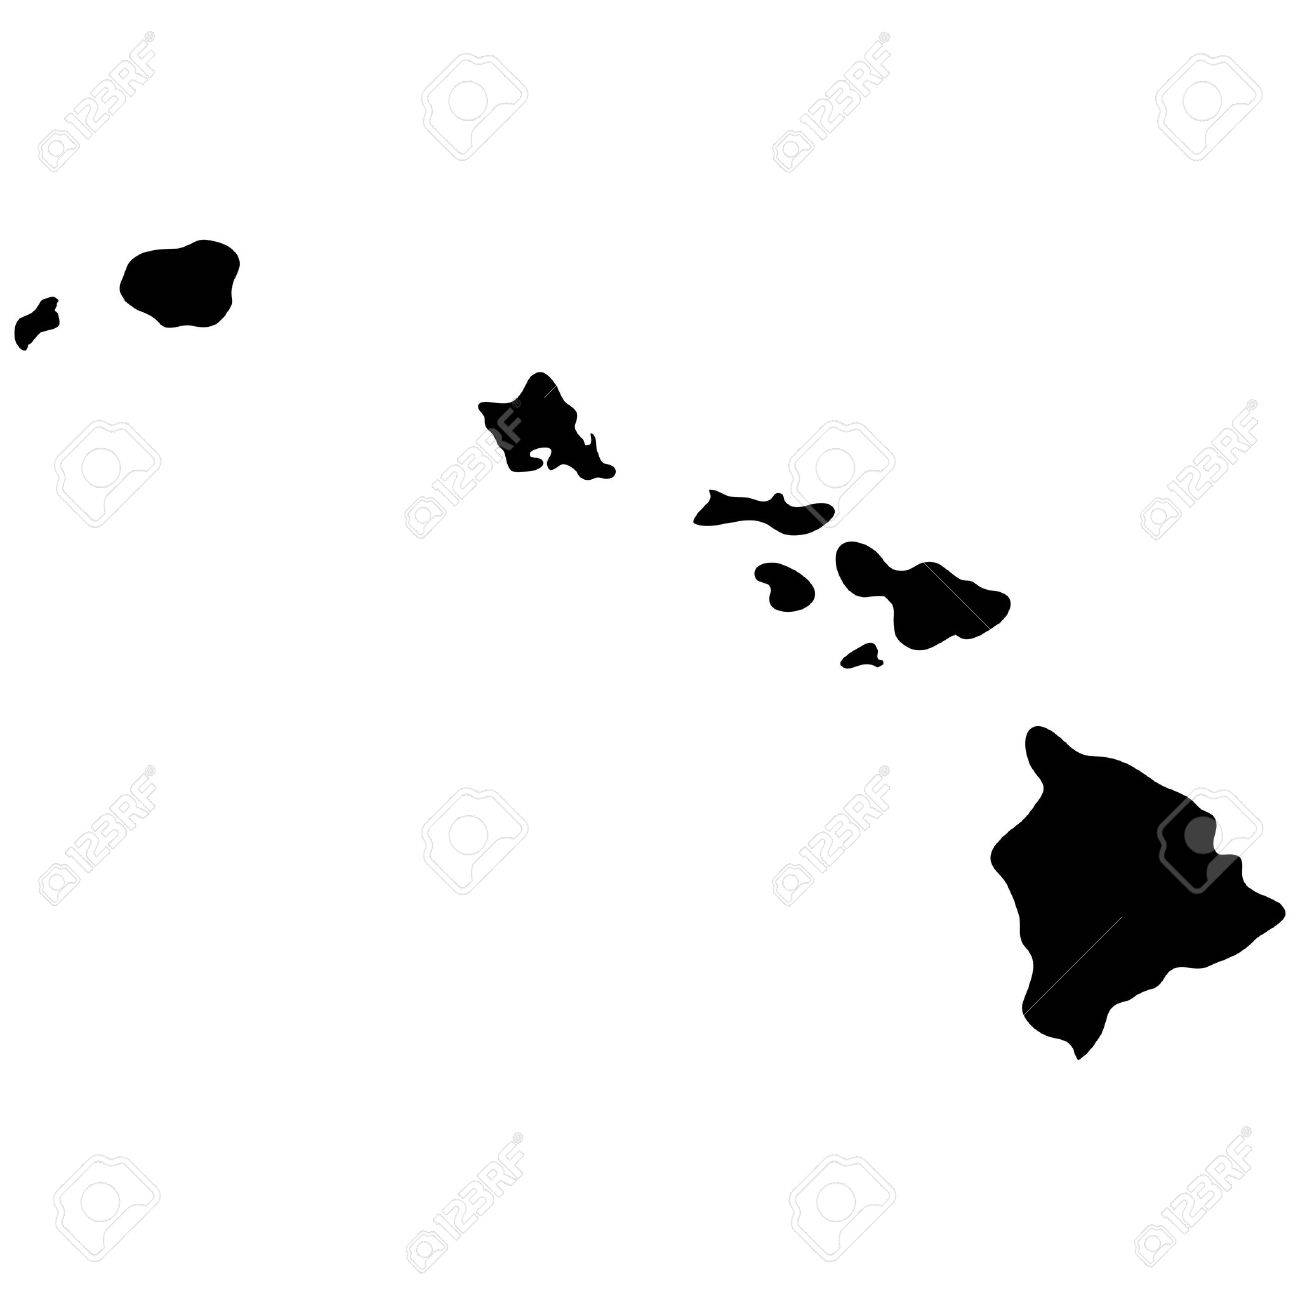 Map Of The US State Of Hawaii Royalty Free Cliparts Vectors